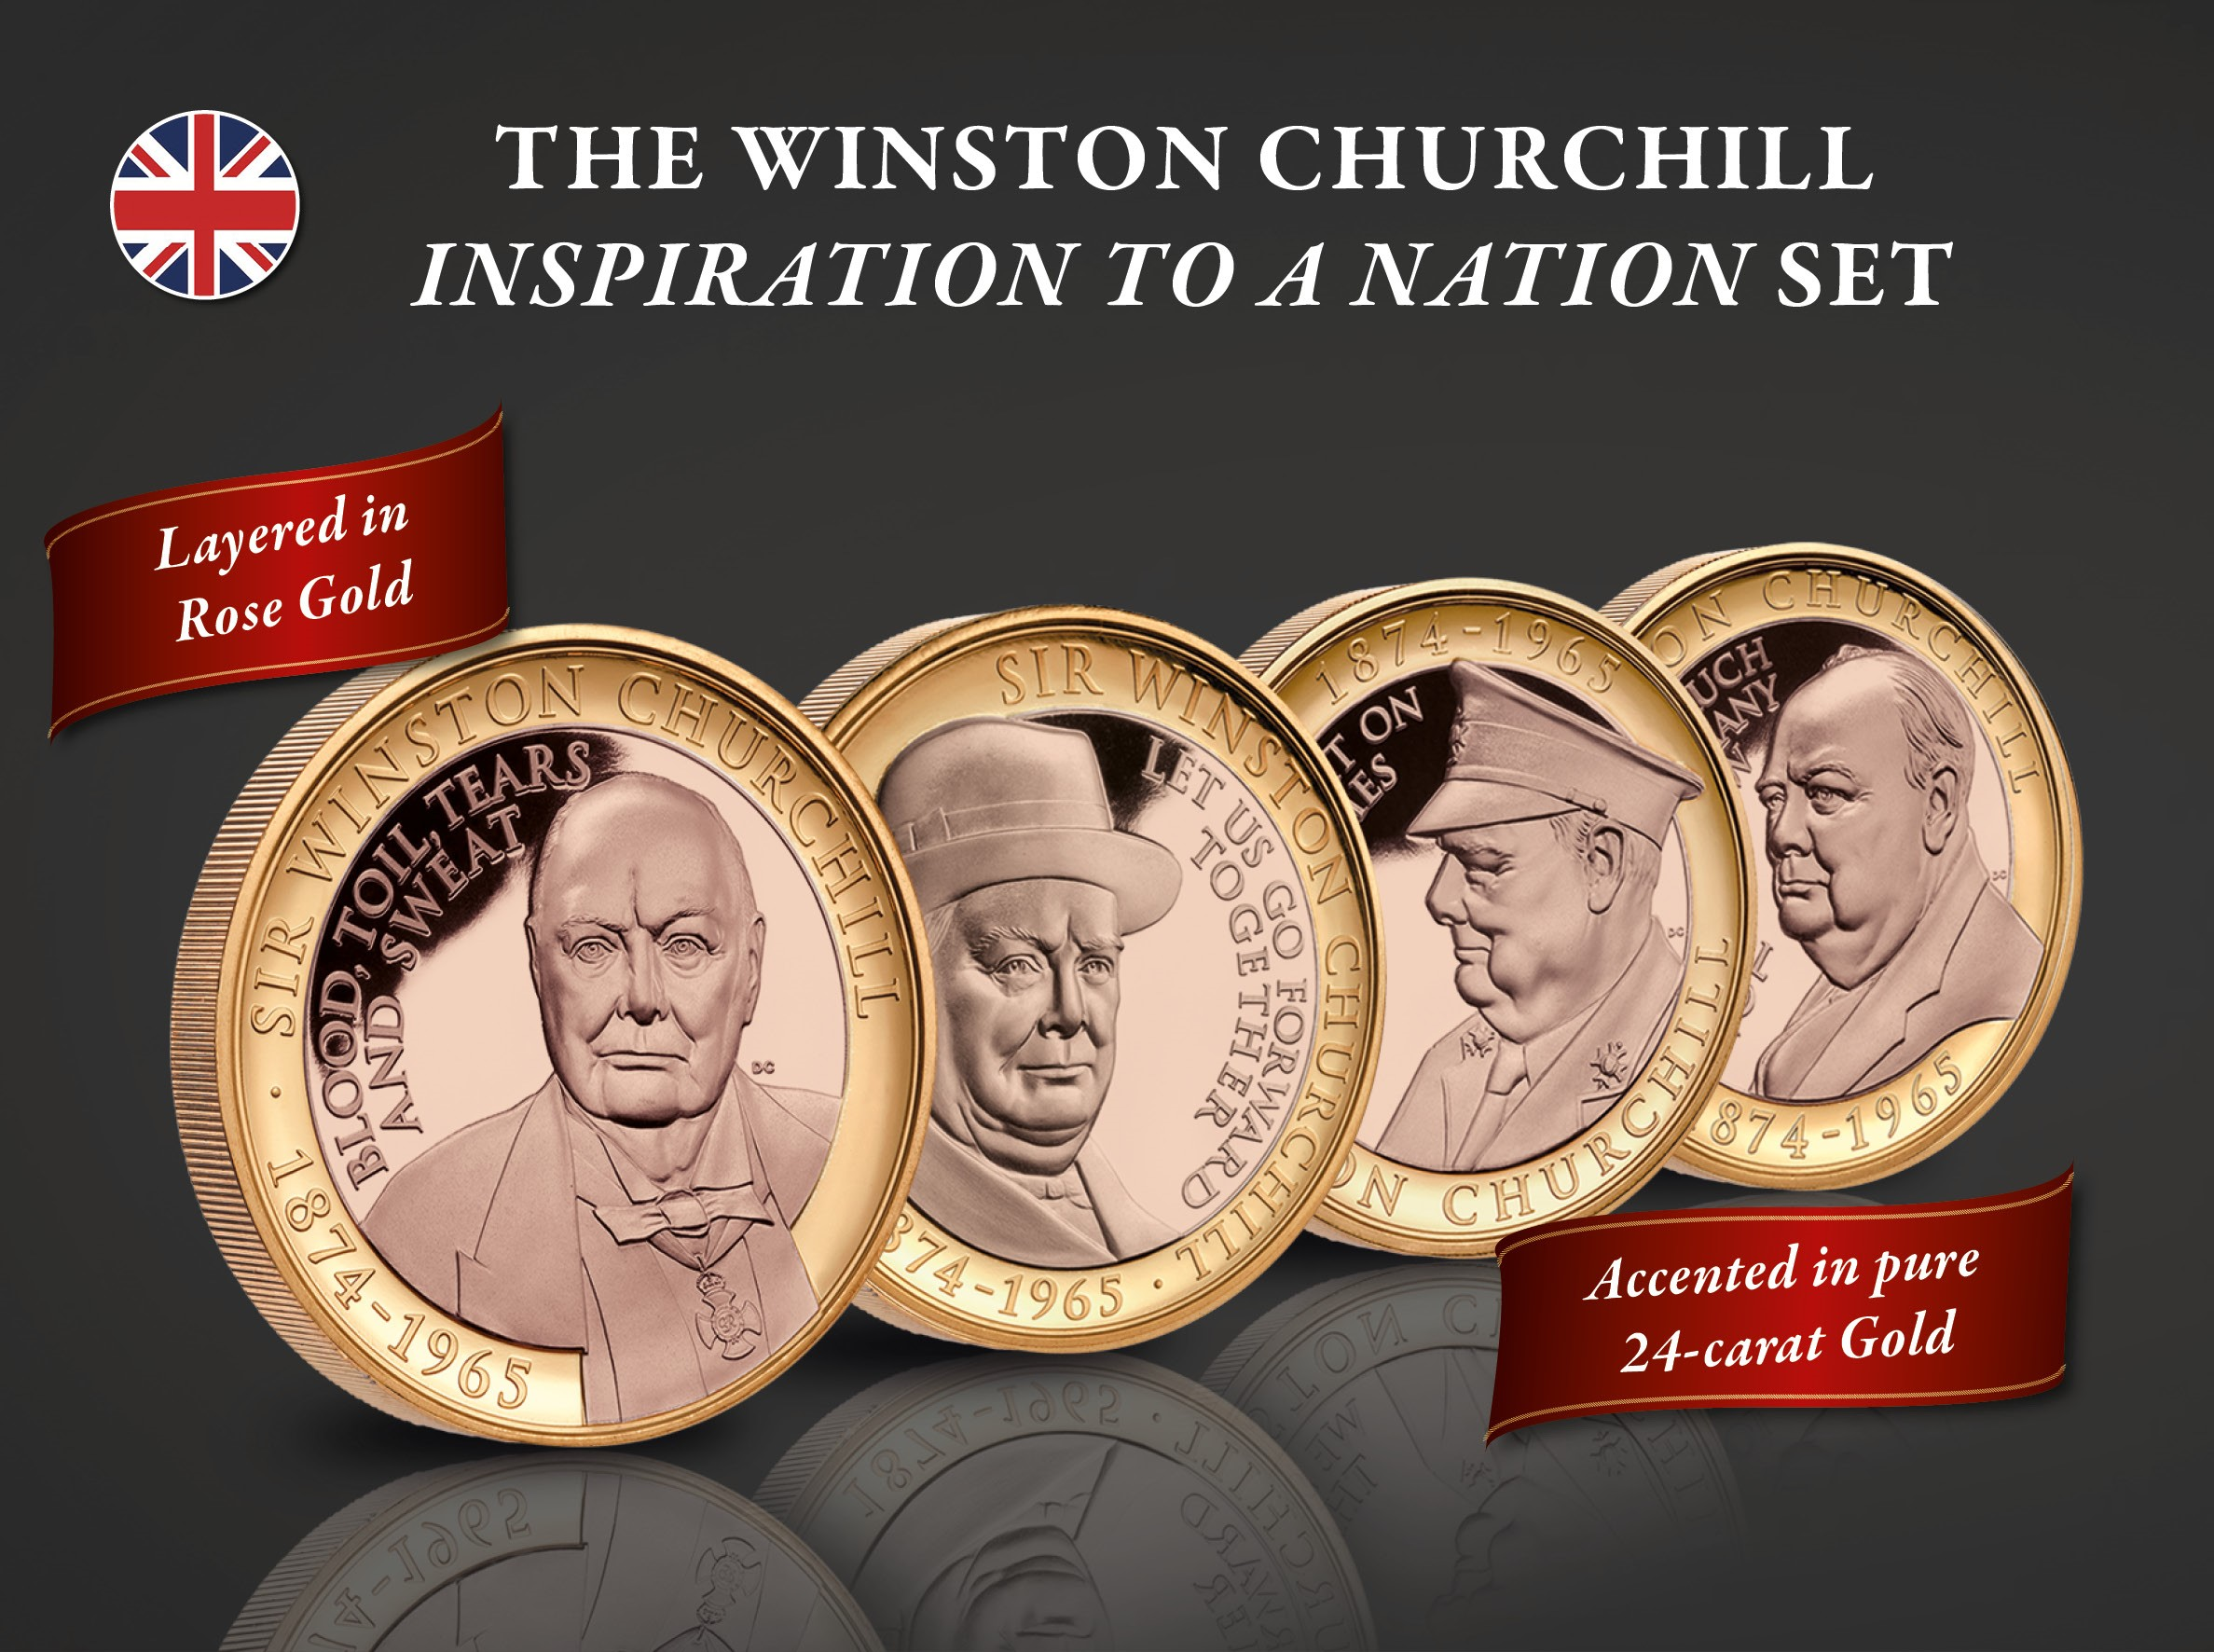 The Winston Churchill Inspiration to a Nation Set